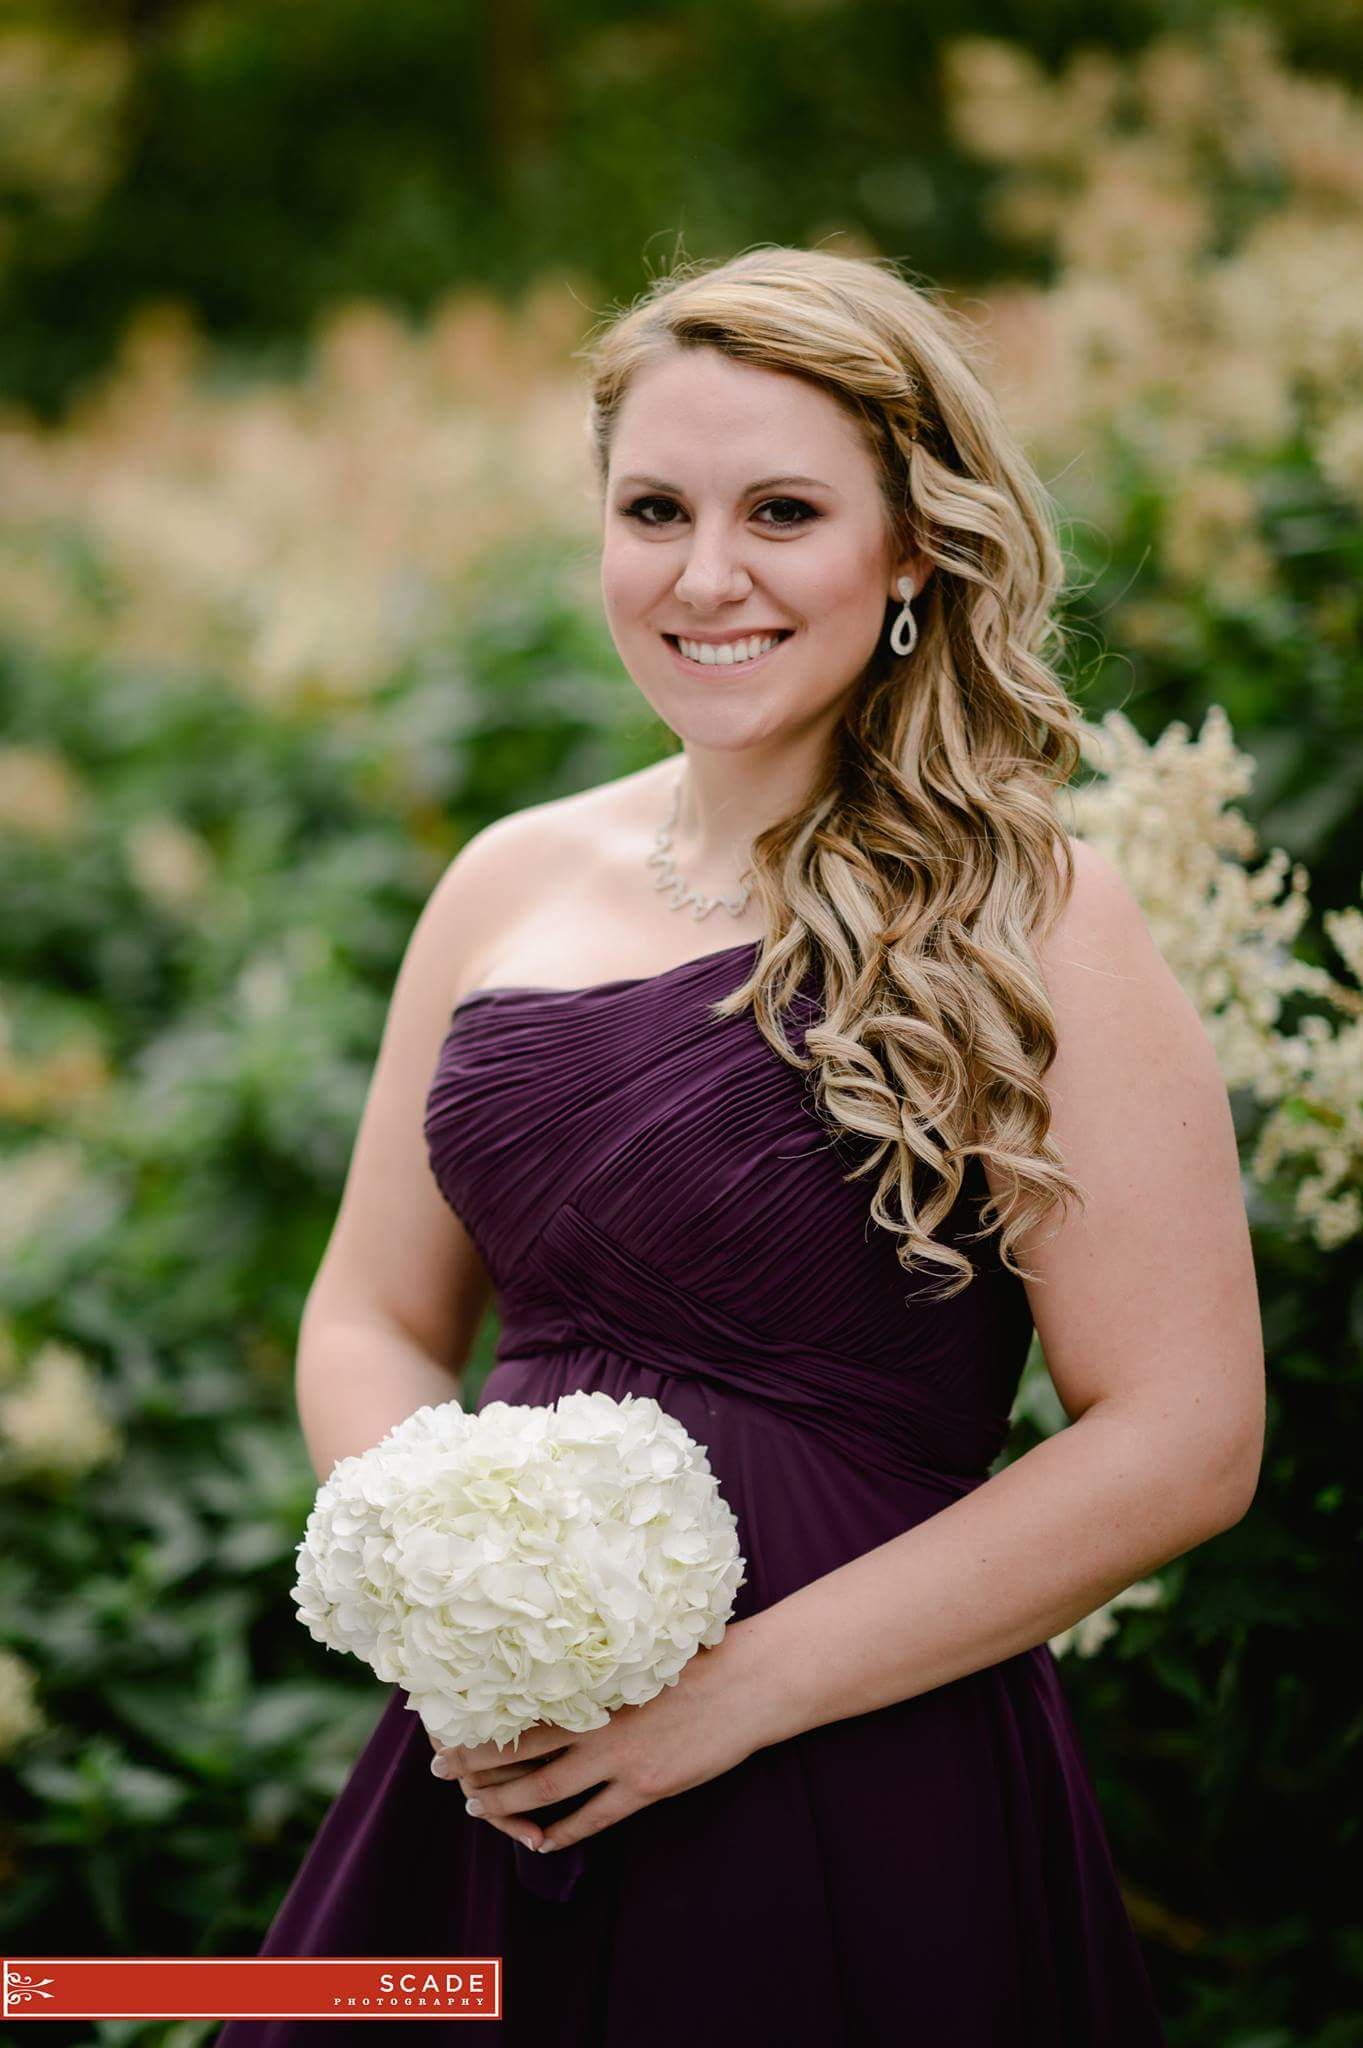 Modern_bridesmaid_Bridal_Makeup_YEG_Edmonton_Weddings_Eclectica_Beauty_Astrid-Woodard-min